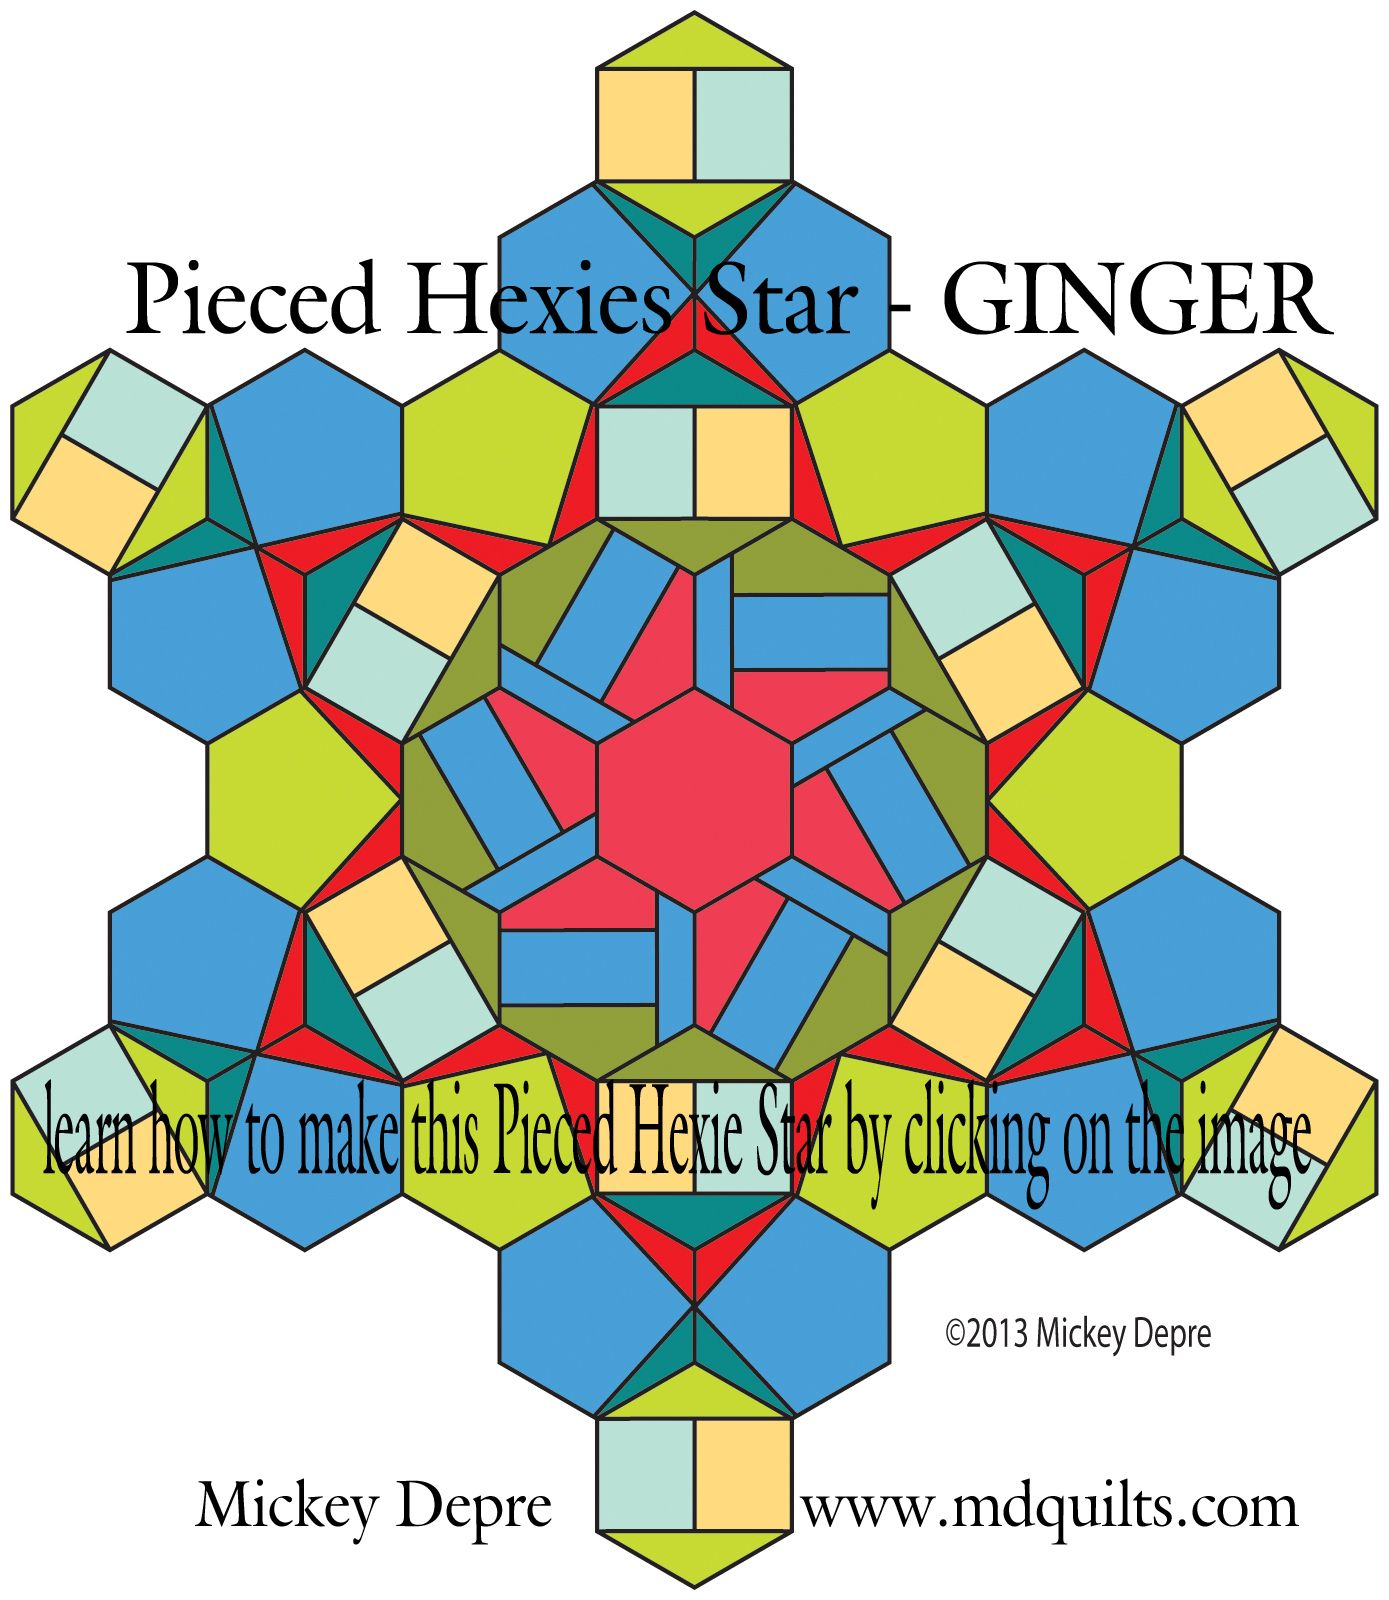 PDF for Pieced Hexie Star - Ginger created by Mickey Depre uses designs found in Pieced Hexies book